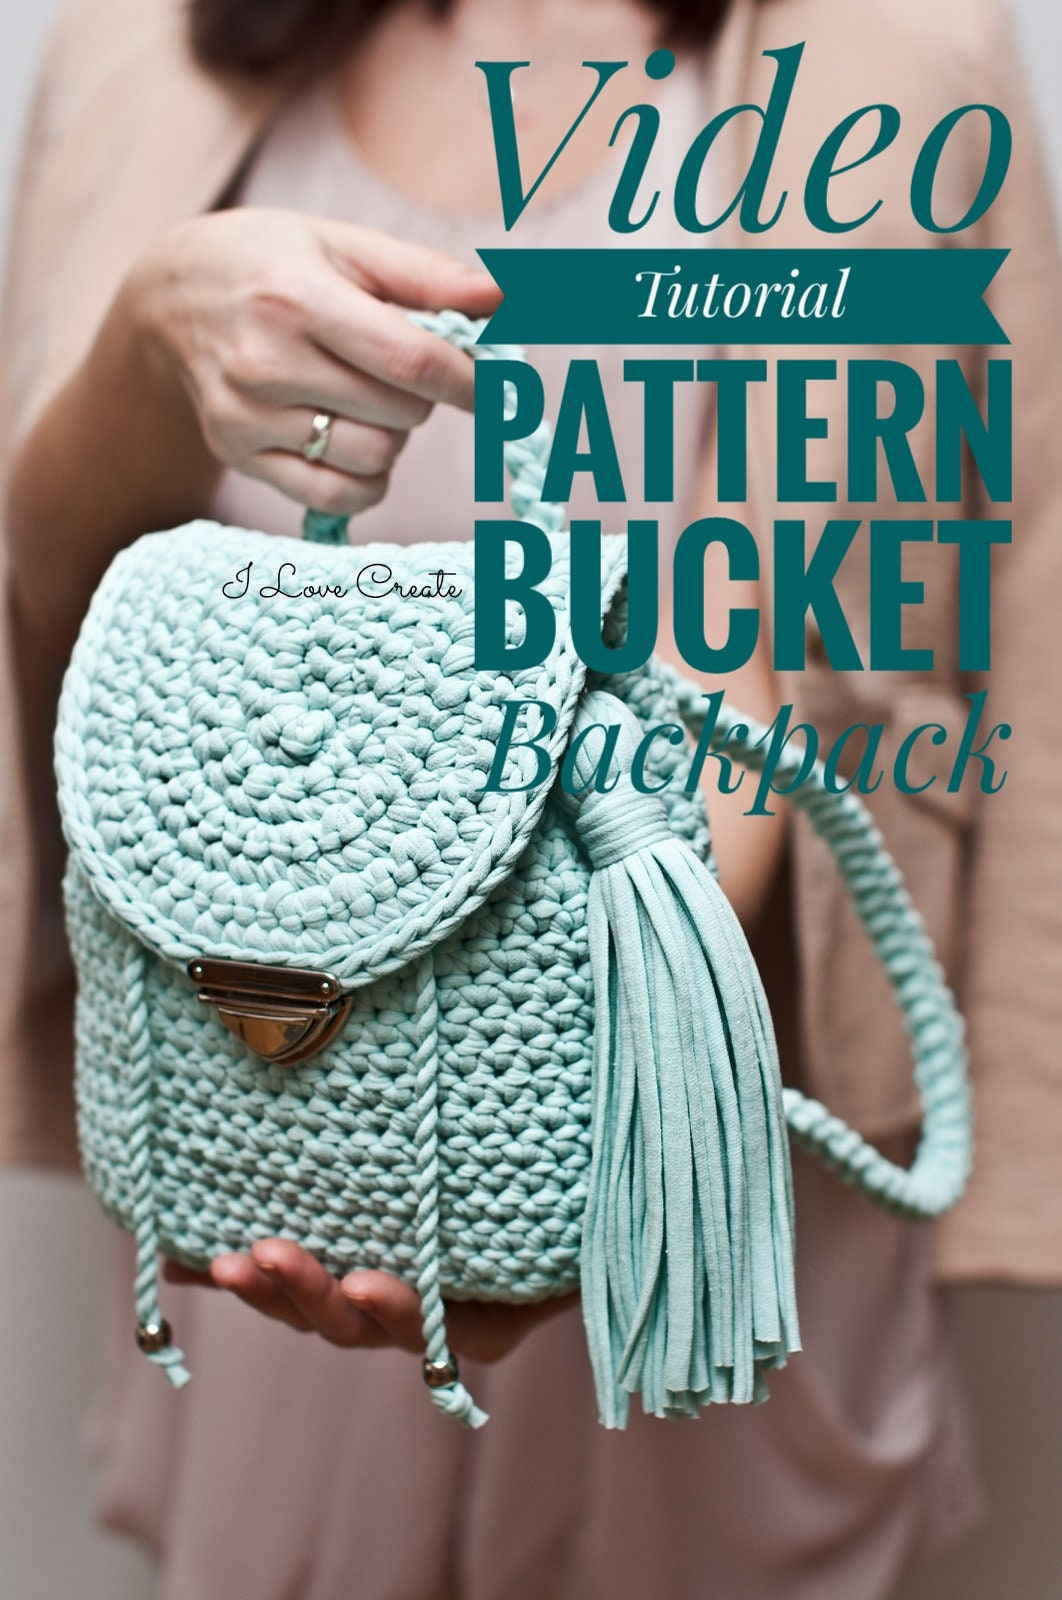 How To Make A Knitted Book Cover ~ Crochet pattern video tutorial crochet backpack crochet etsy